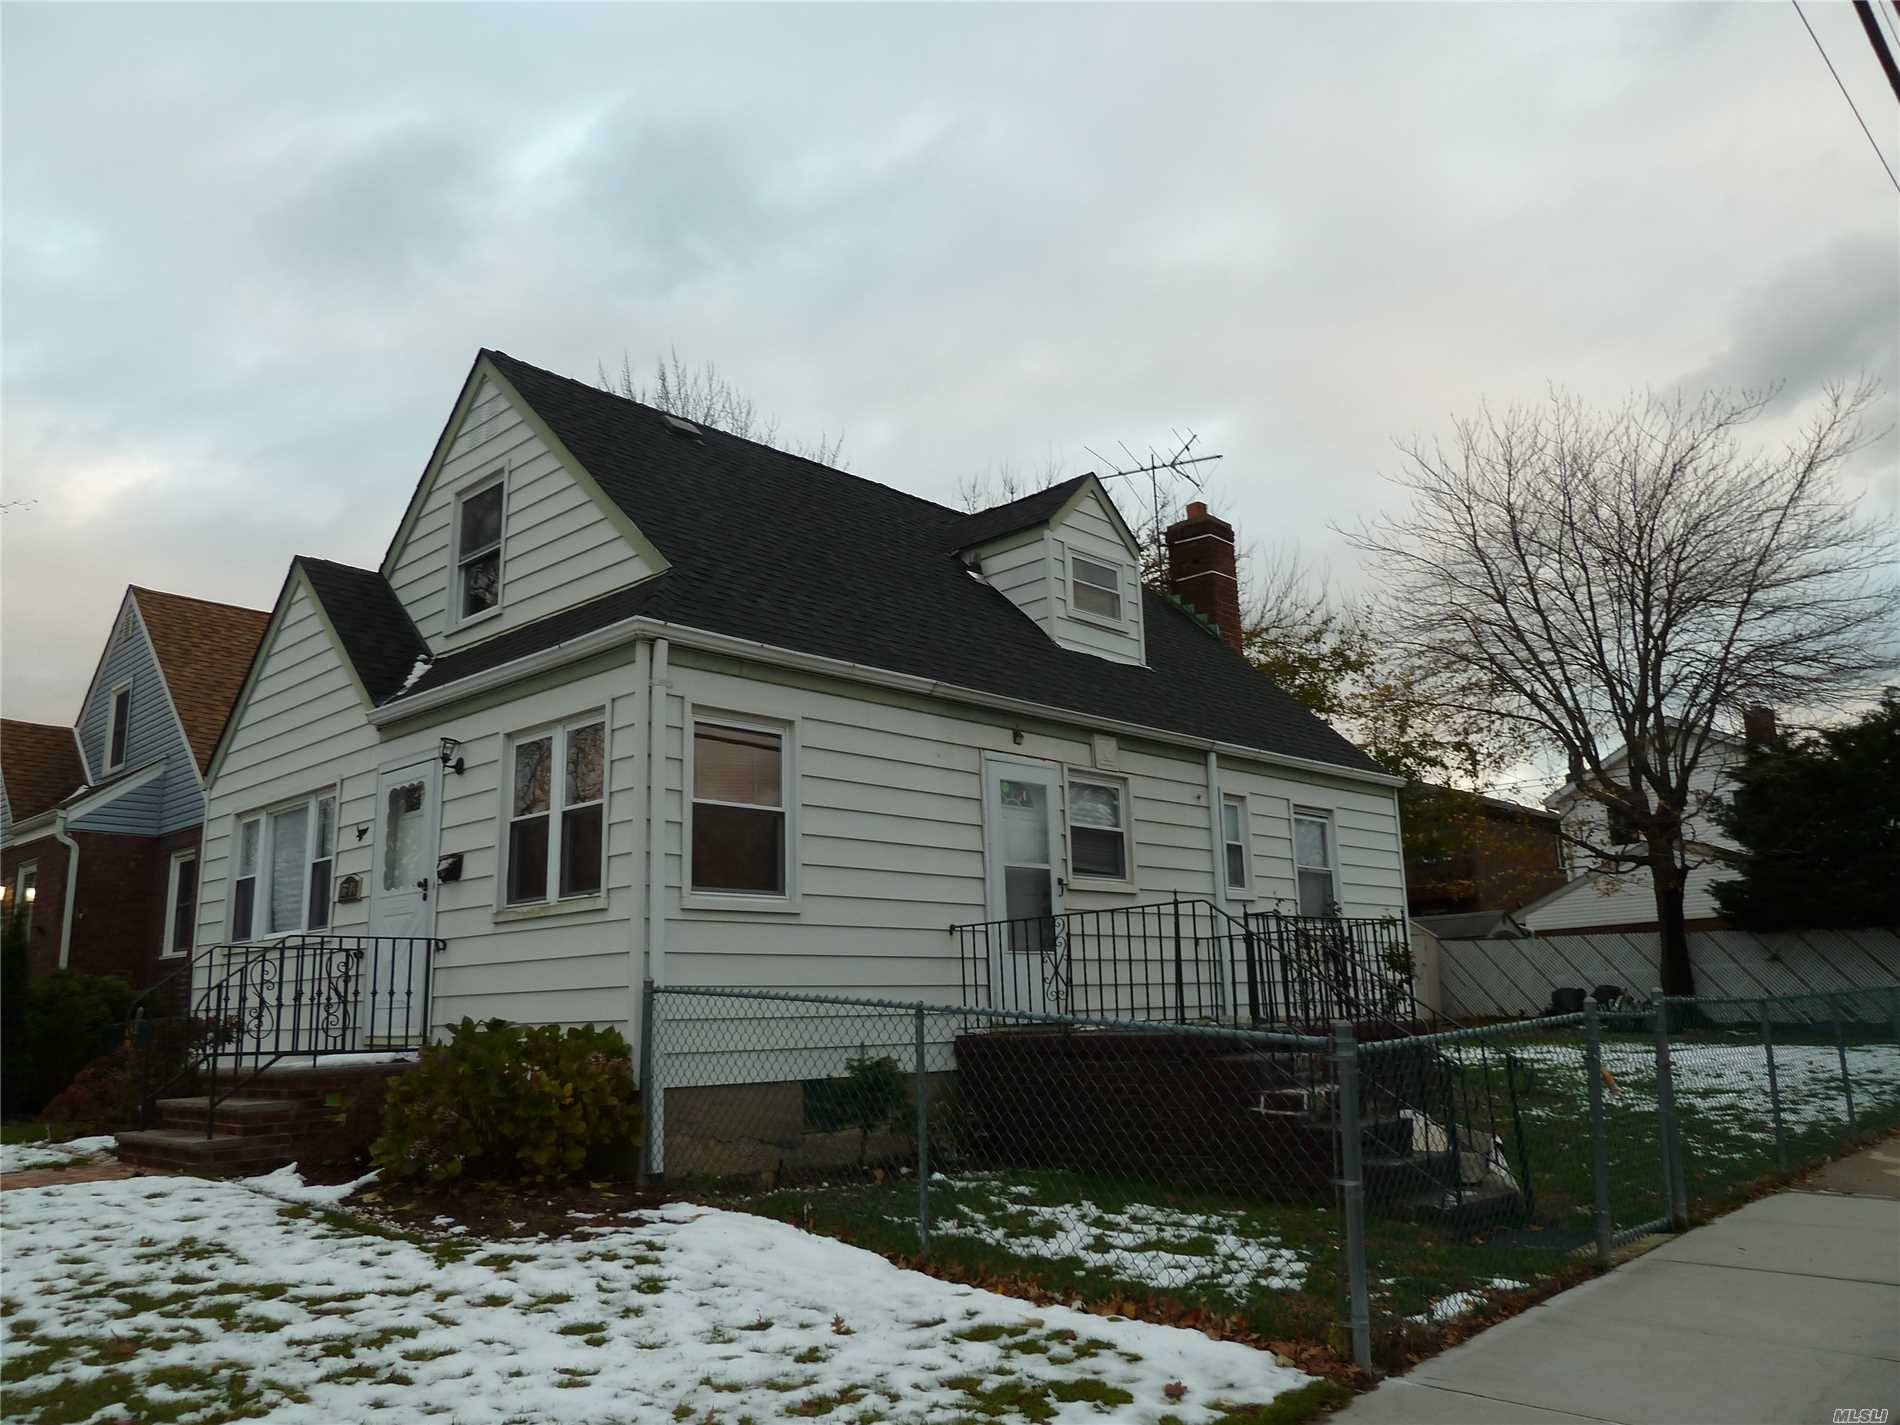 Beautiful Prime Whitestone Loction Corner Property Renovated Cape With Huge Extra Backyard Updated Kitchen And Bathroom Wood Floor Short Distance Expressway,  Shopping, School, Transportation